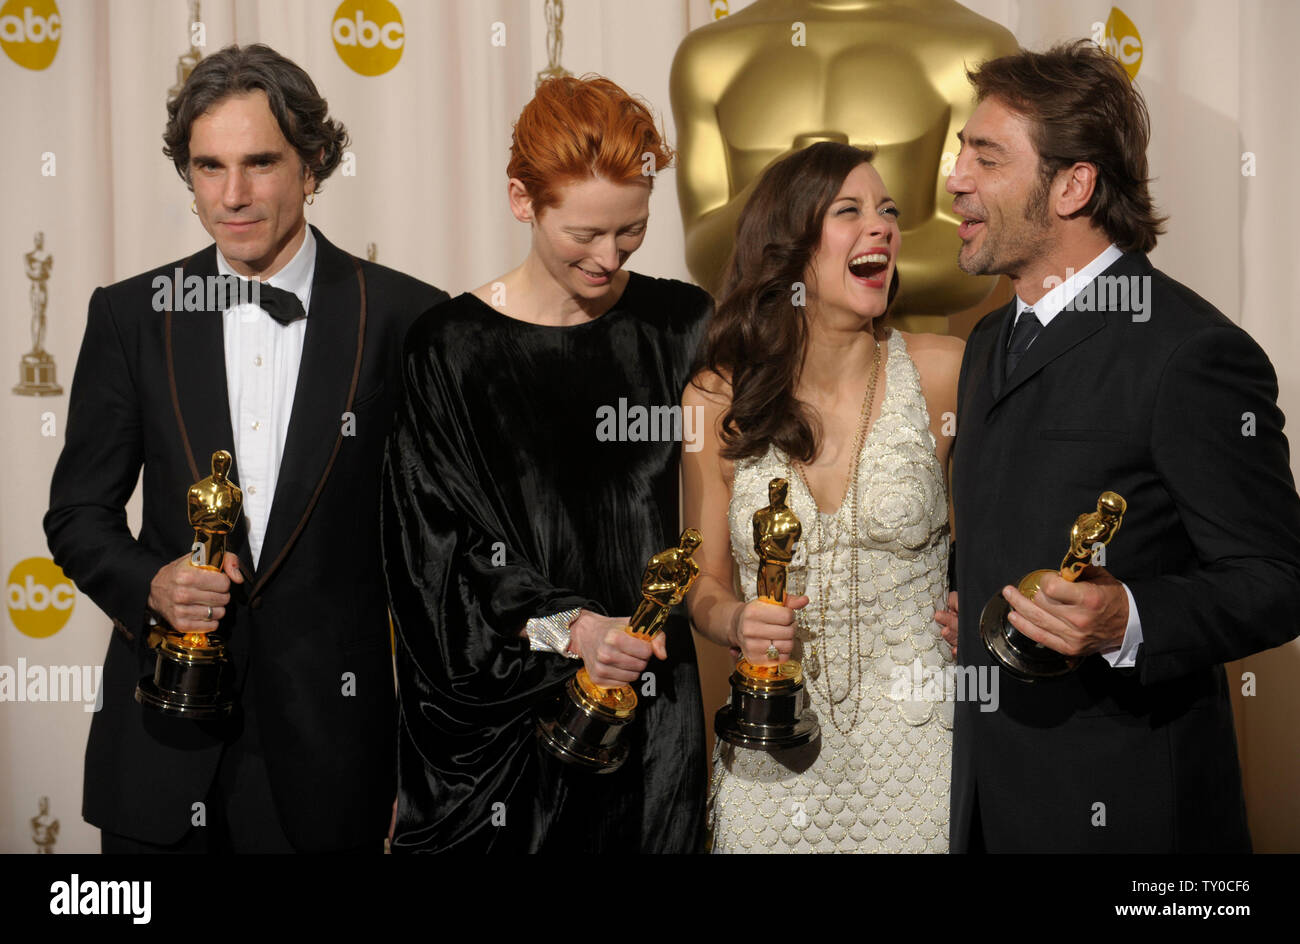 Daniel Day Lewis L R Best Actor Winner For There Will Be